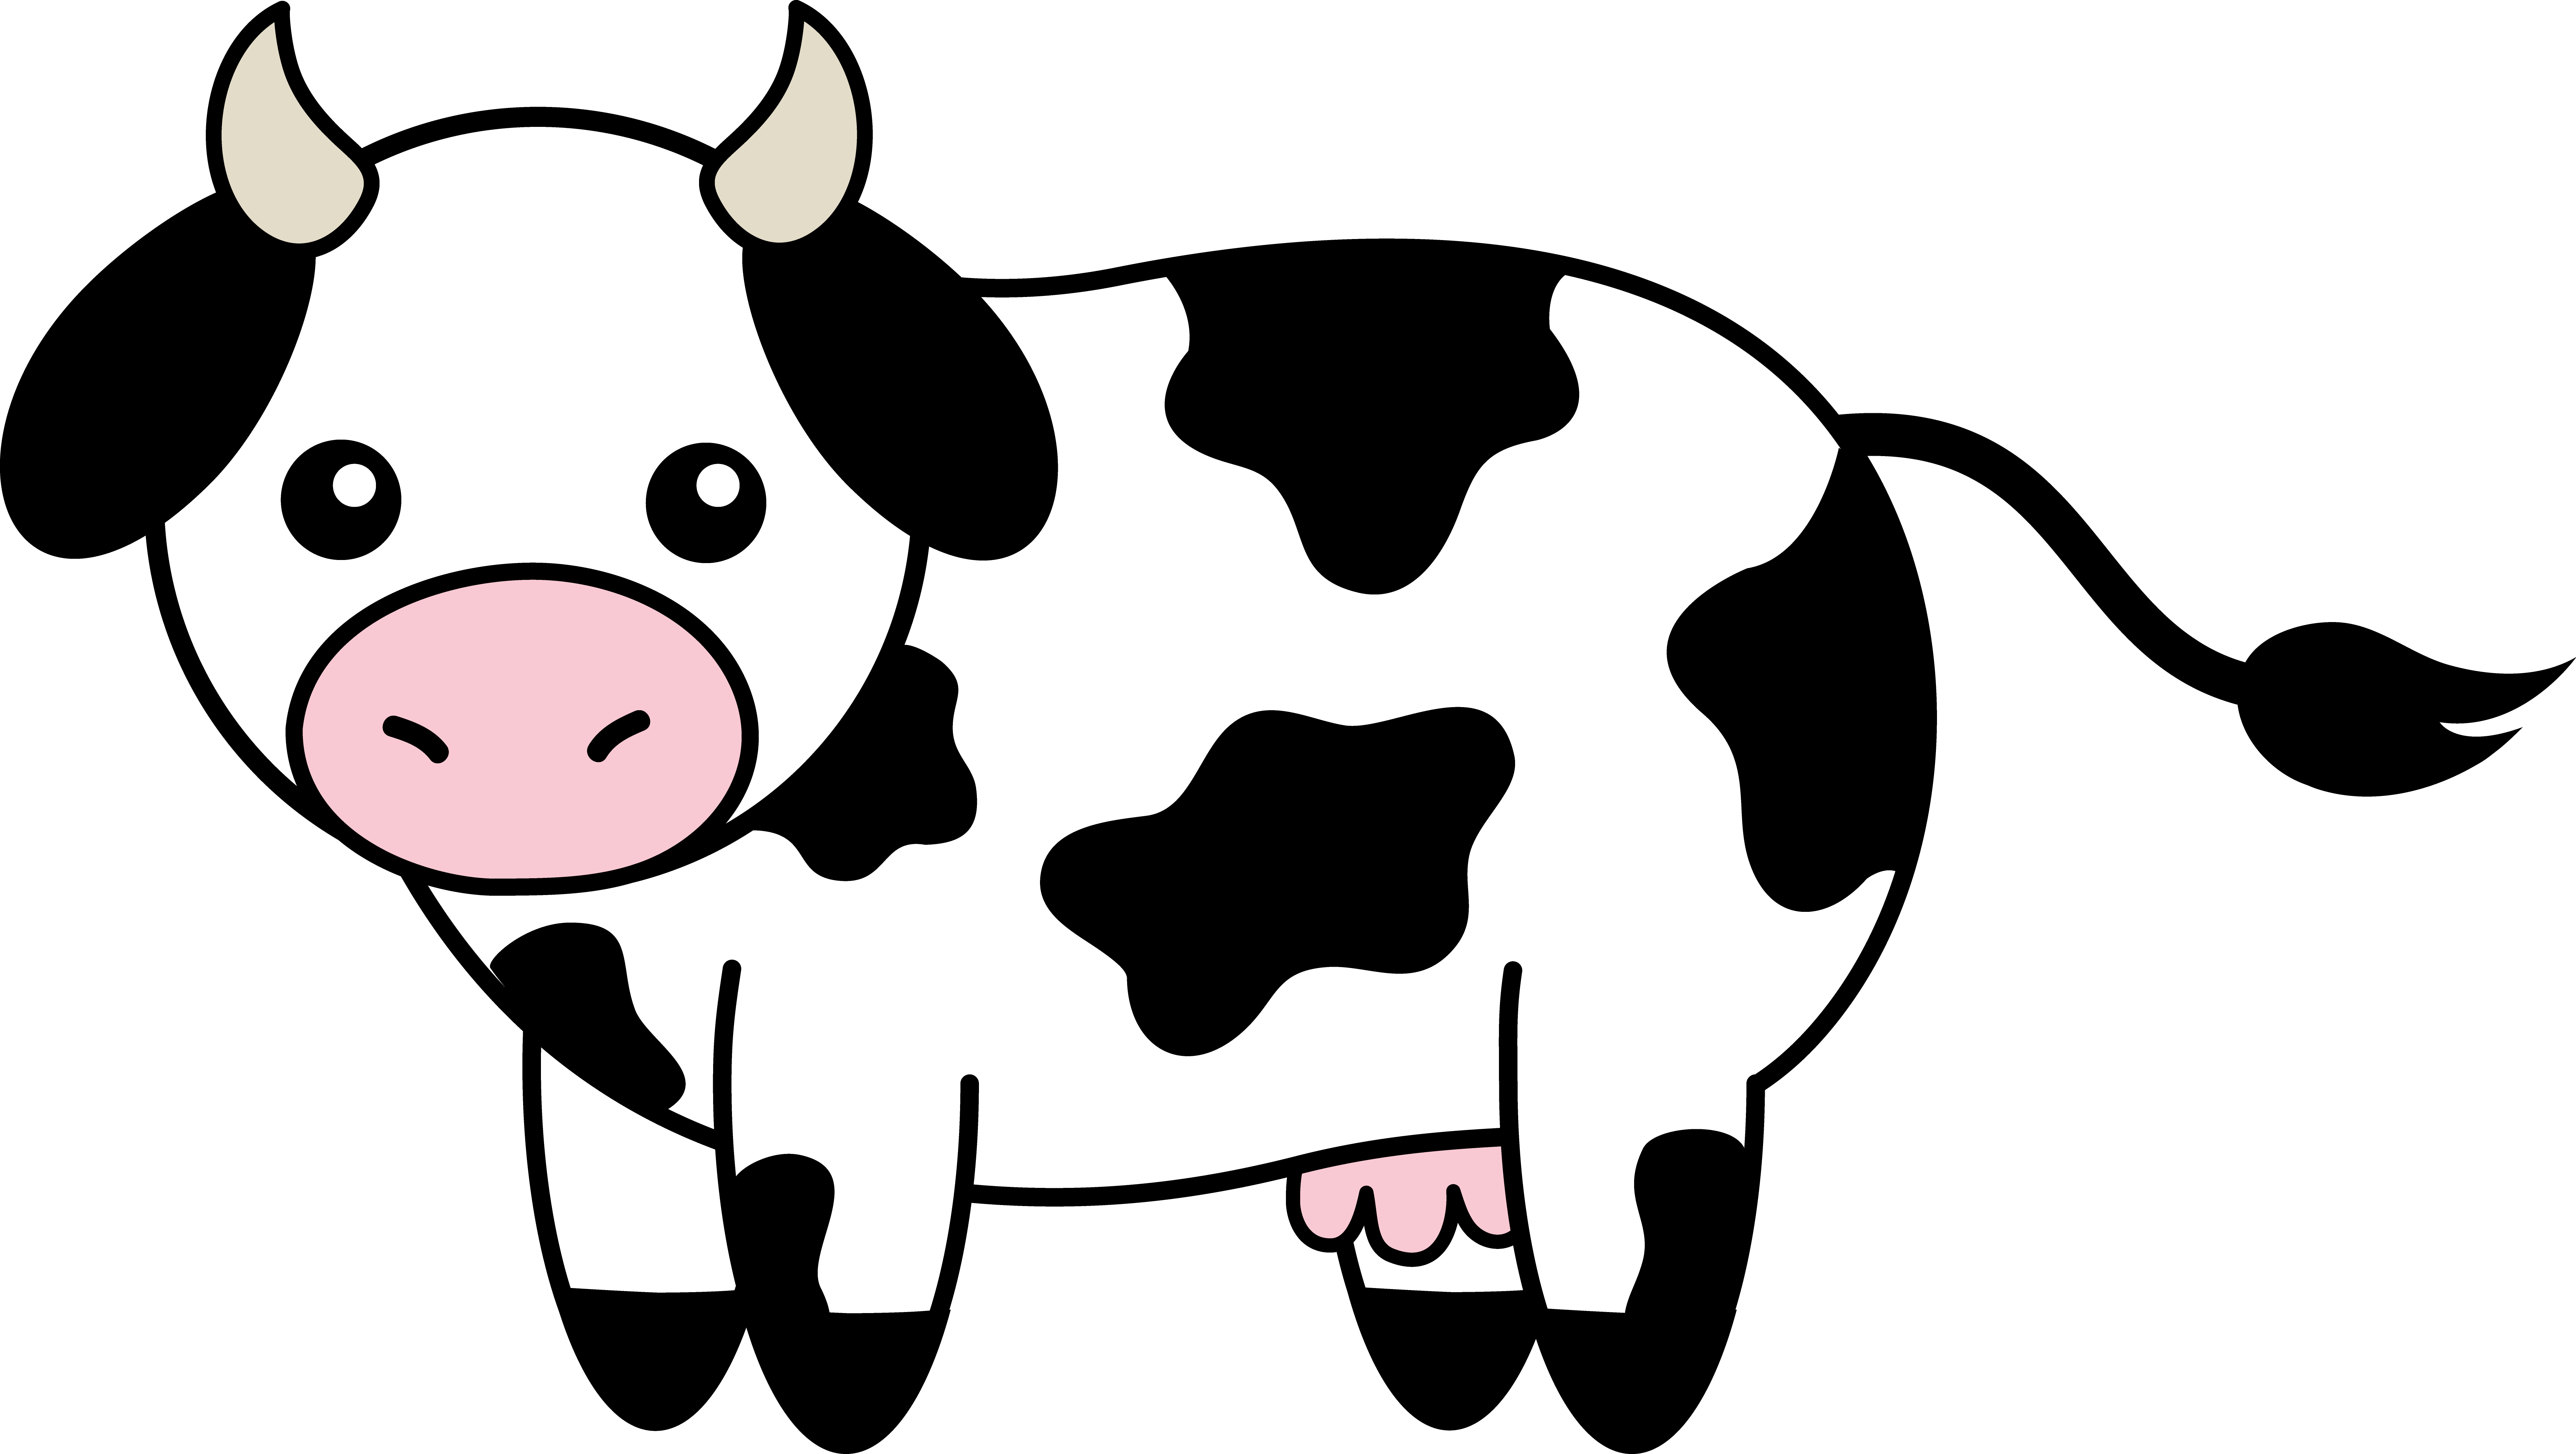 cow_black_white